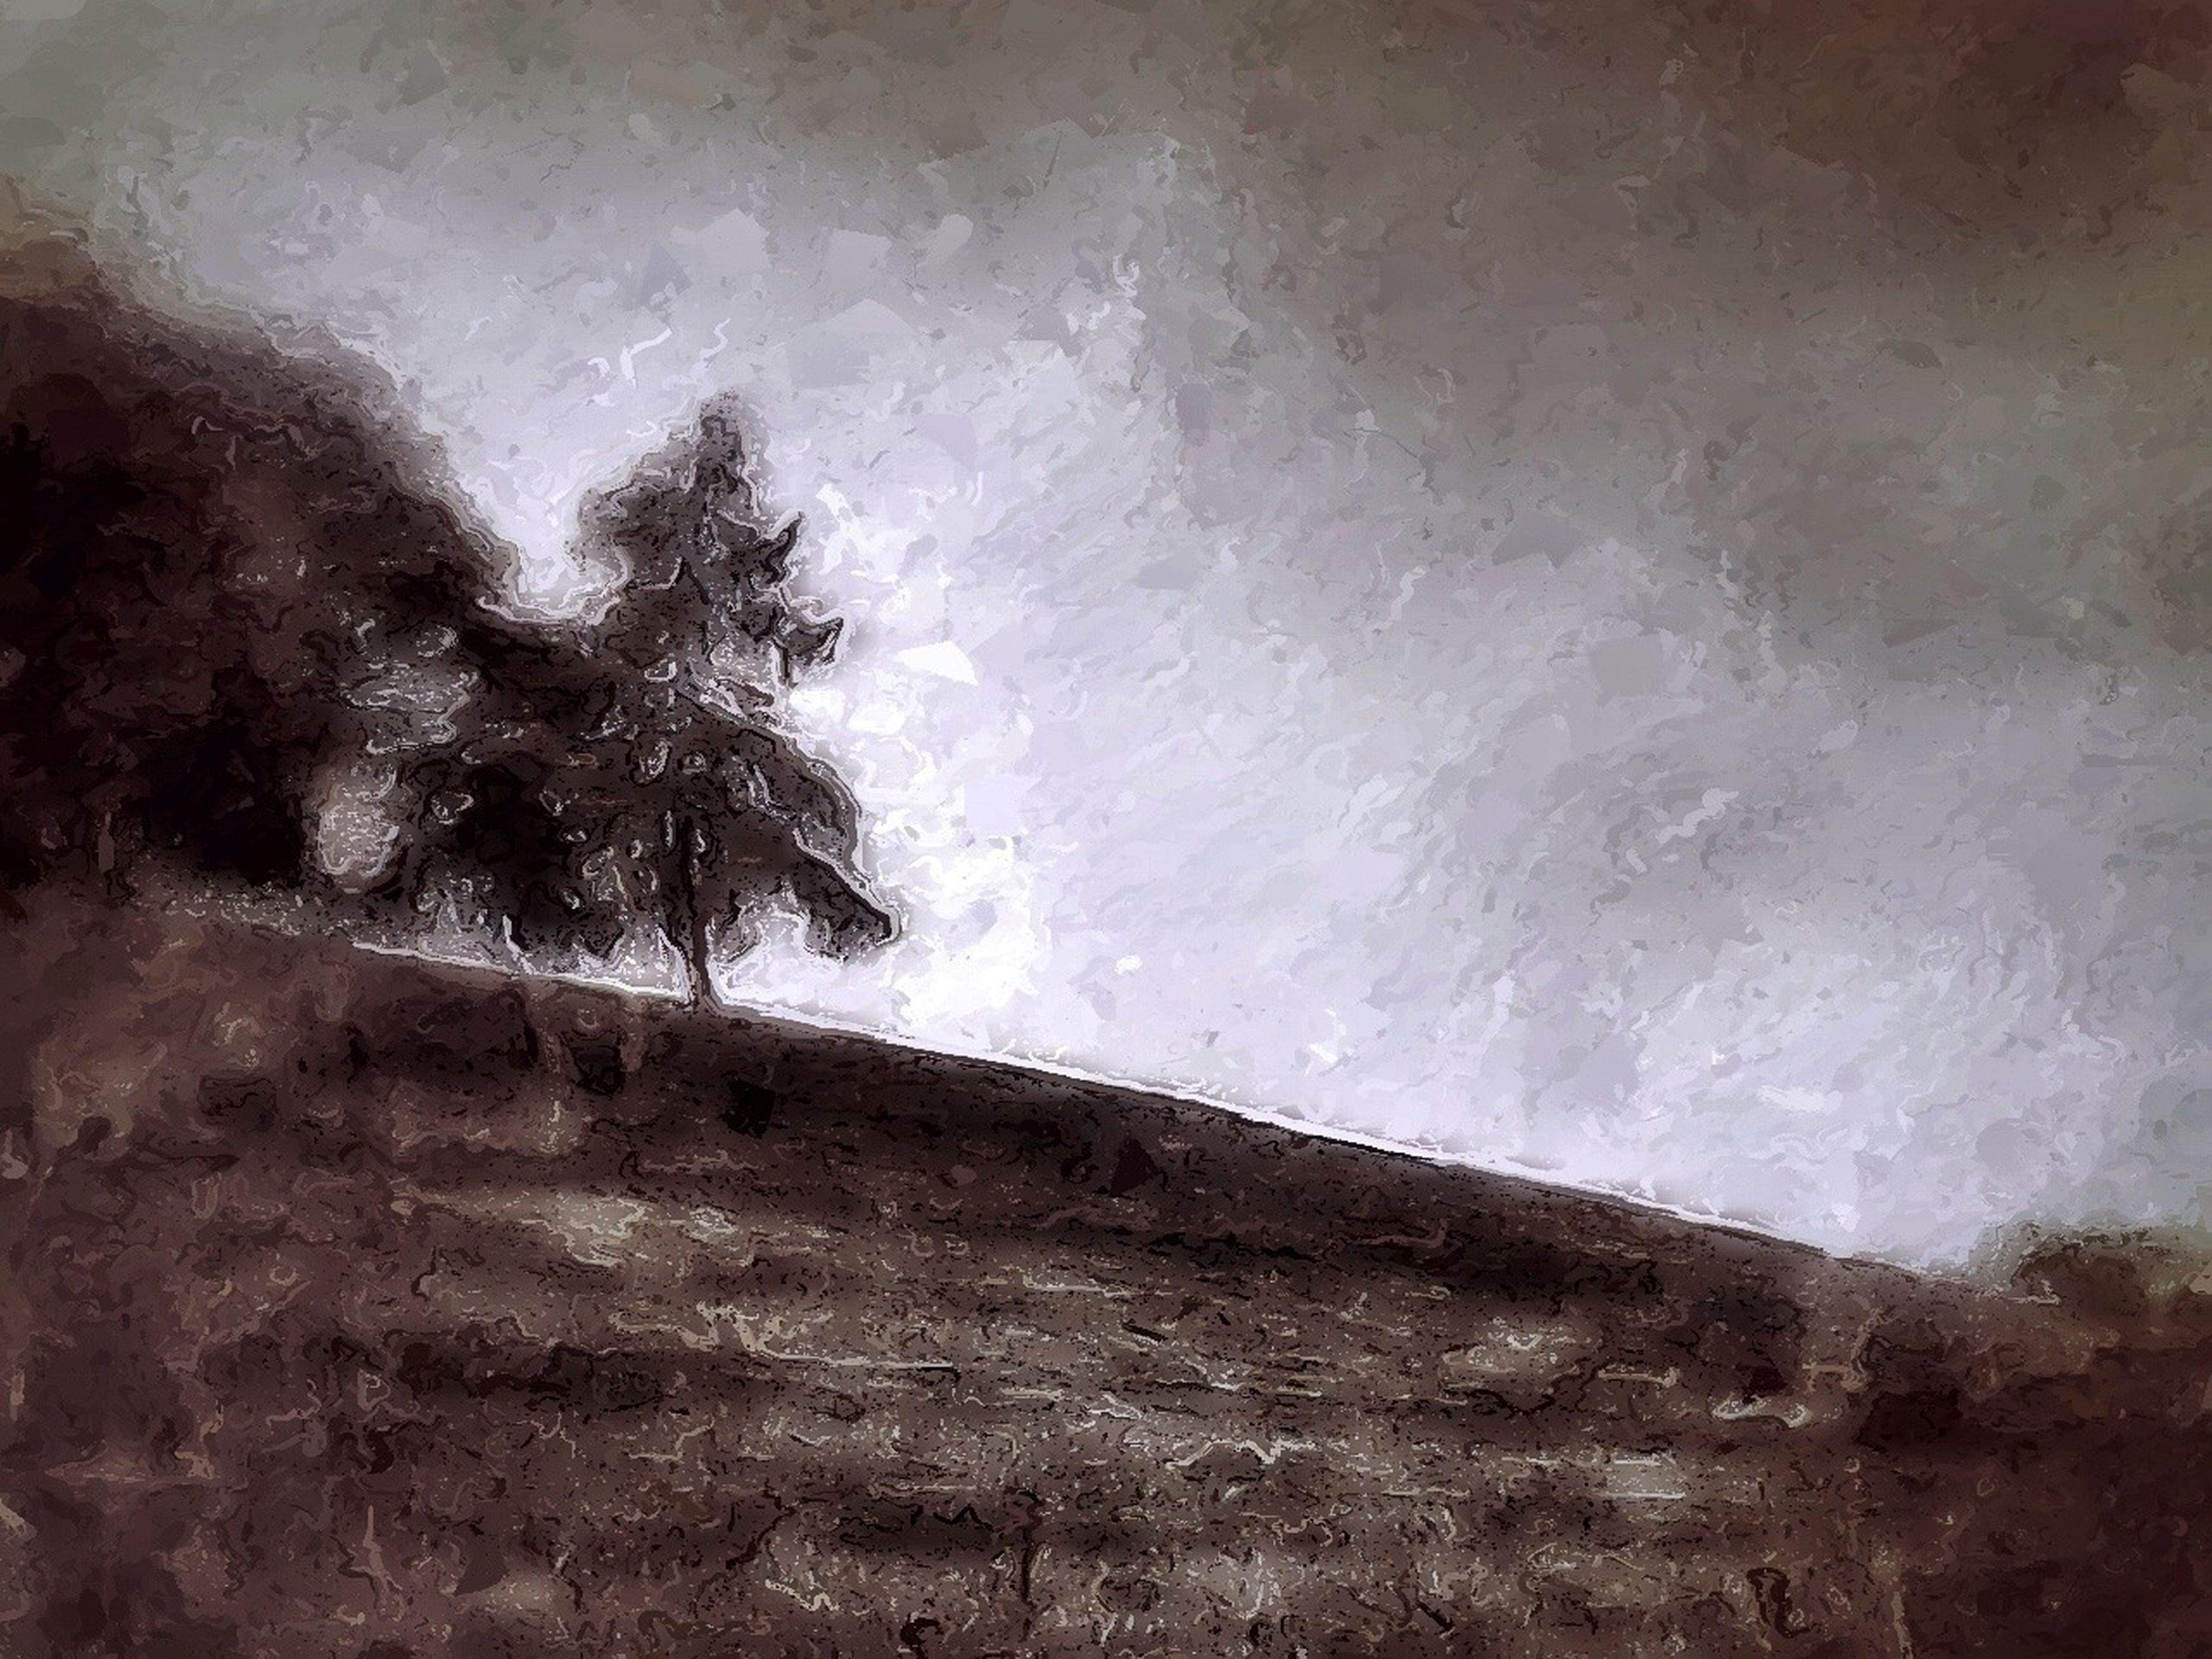 tree, tranquility, nature, wall - building feature, field, landscape, tranquil scene, day, growth, grass, copy space, outdoors, sky, no people, tree trunk, plant, solitude, built structure, abandoned, wall